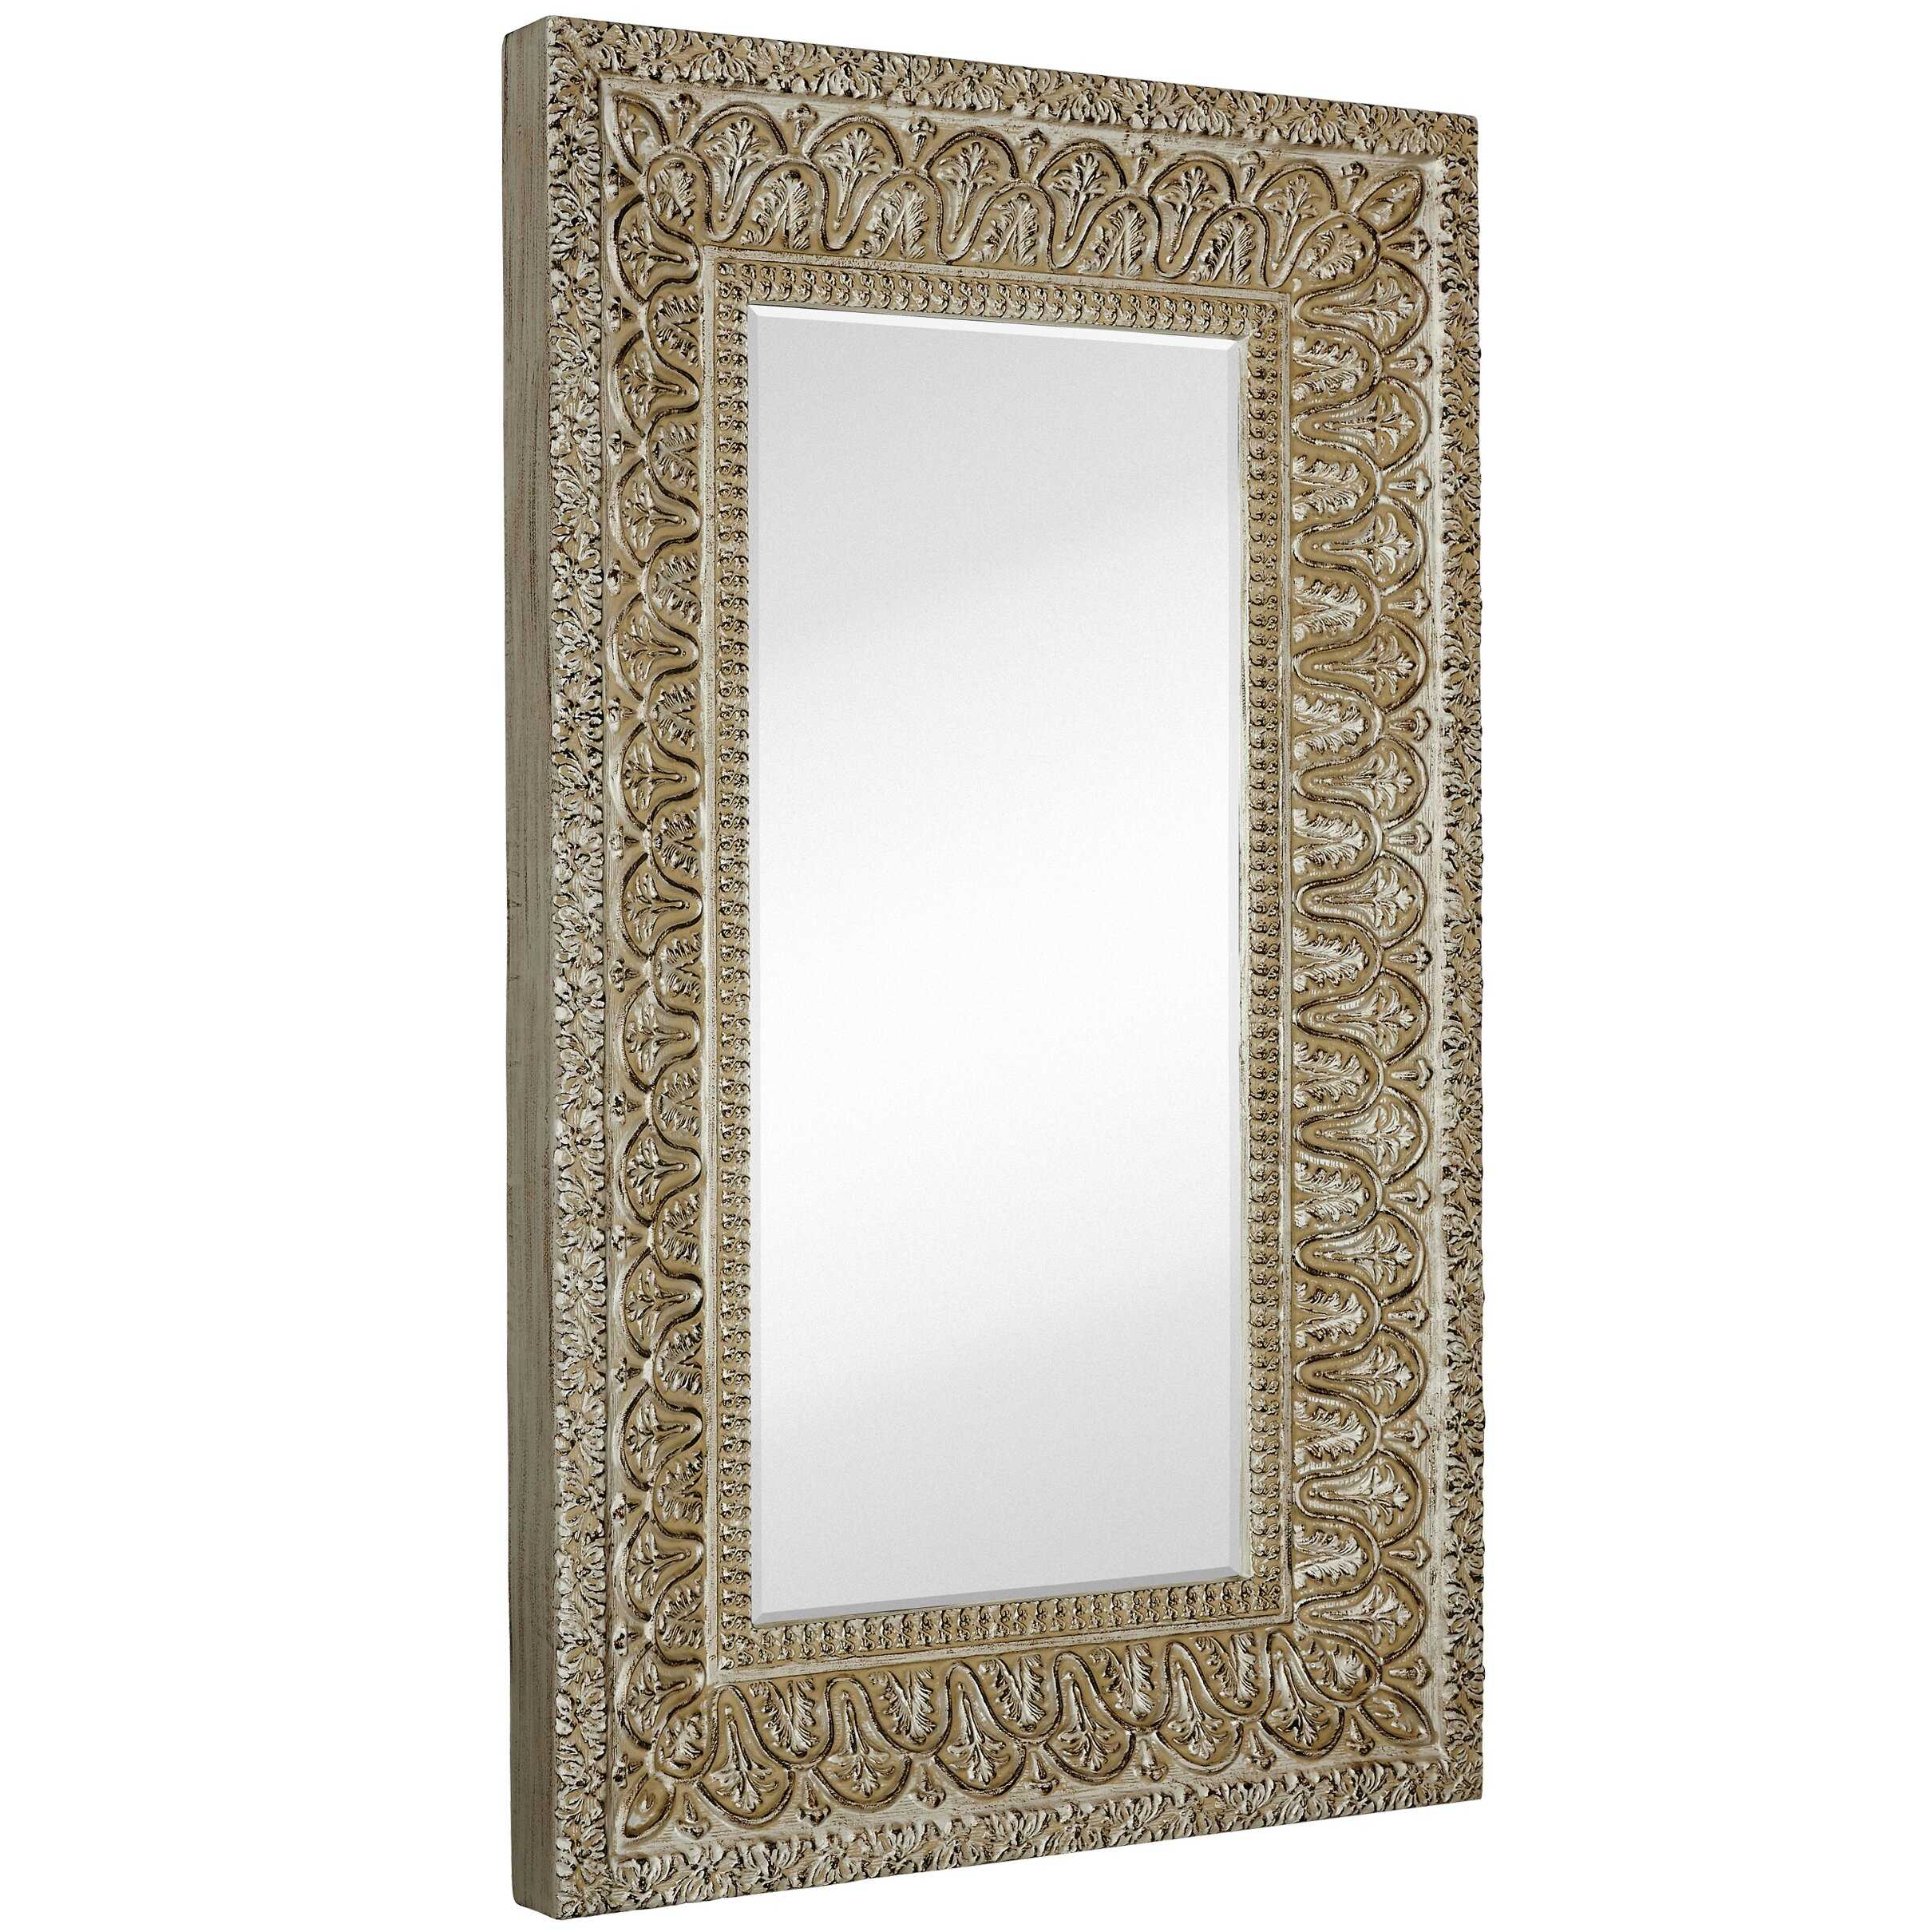 Majestic mirror full length beveled glass wall mirror for Full length glass mirror